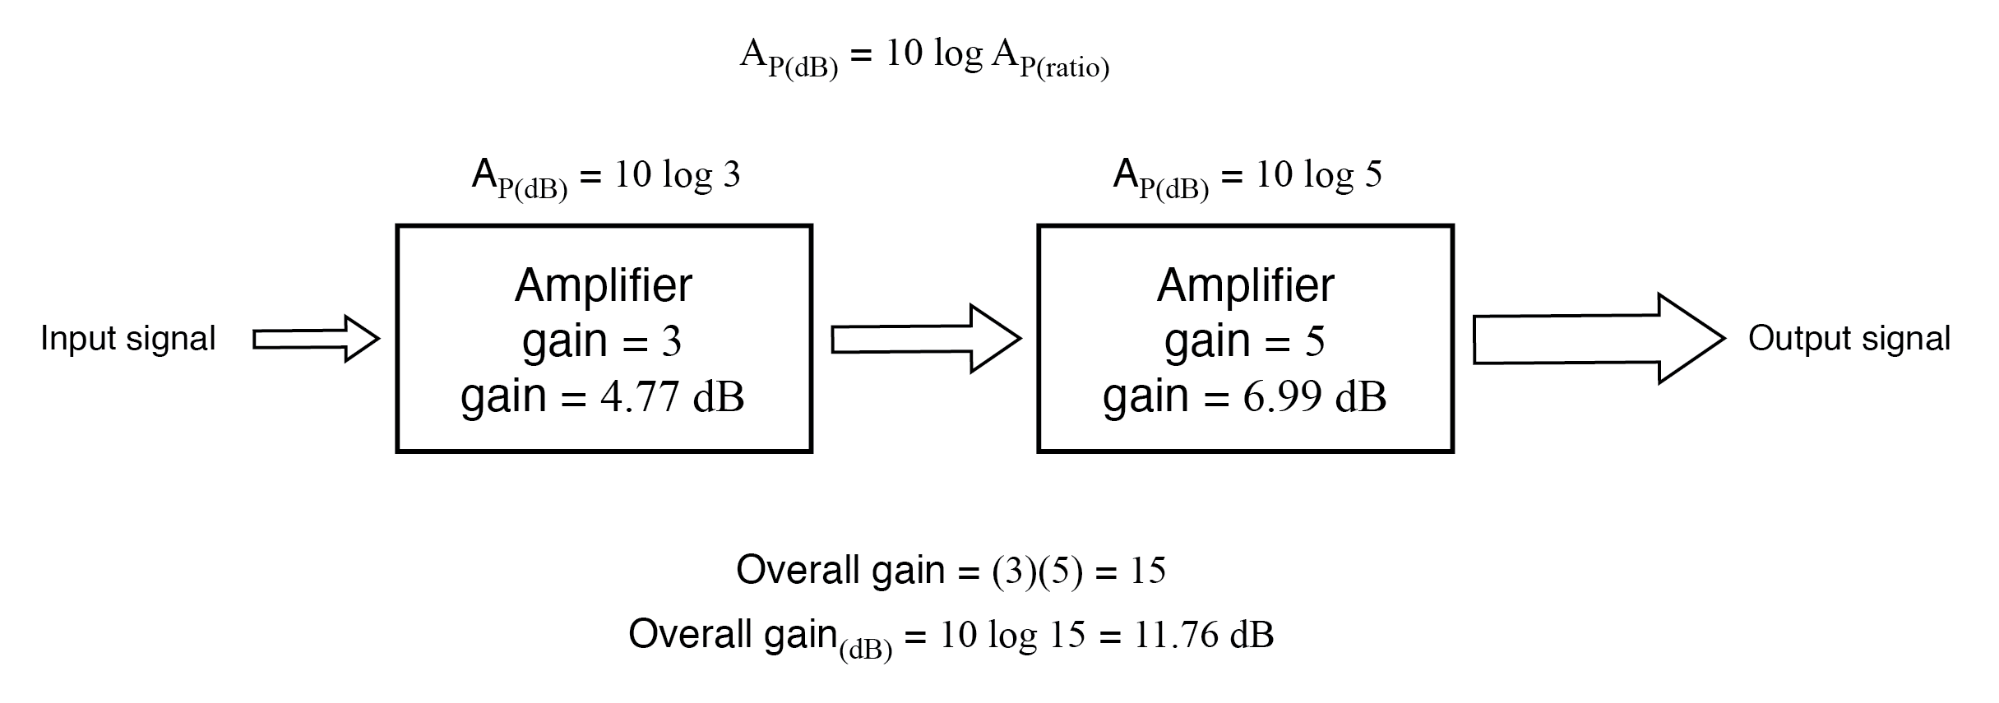 Gain of amplifier stages in decibels is additive: 4.77 dB + 6.99 dB = 11.76 dB.